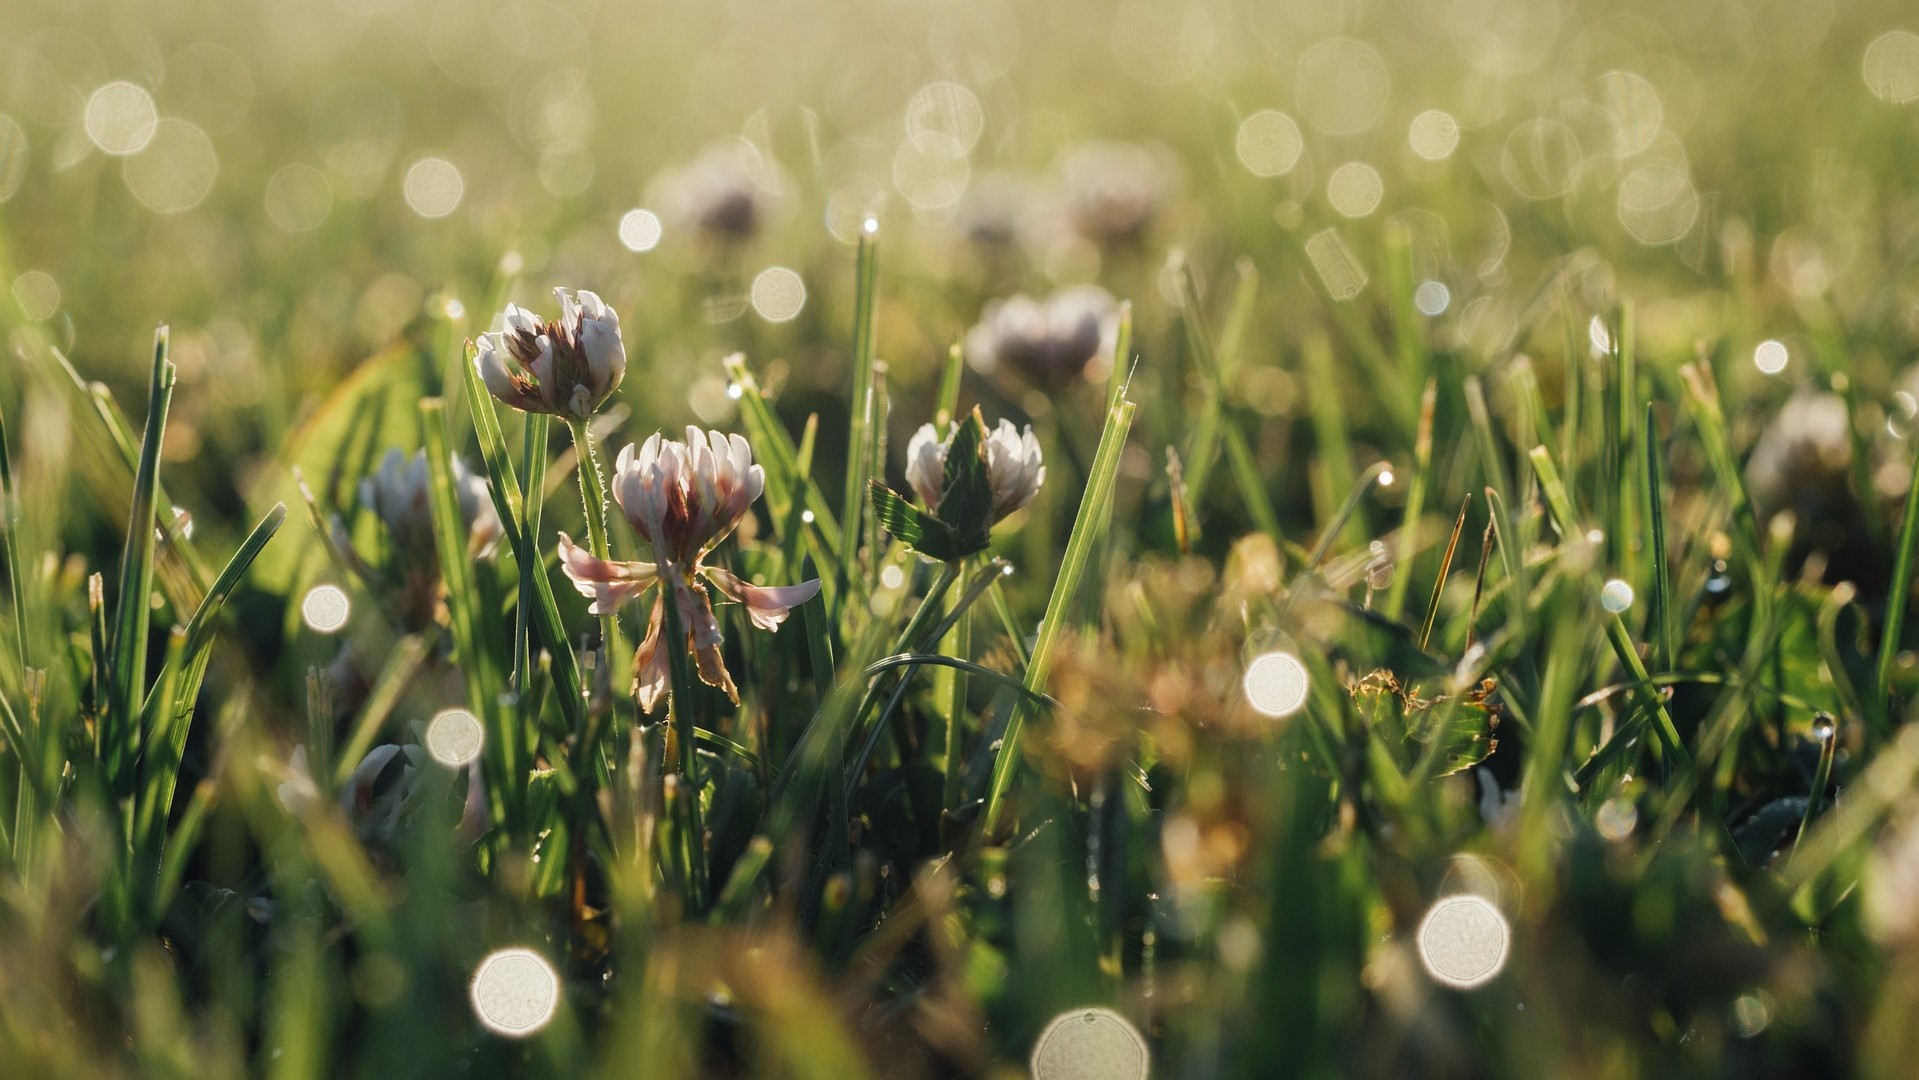 Attract Bees - flower - wildflowers - clover